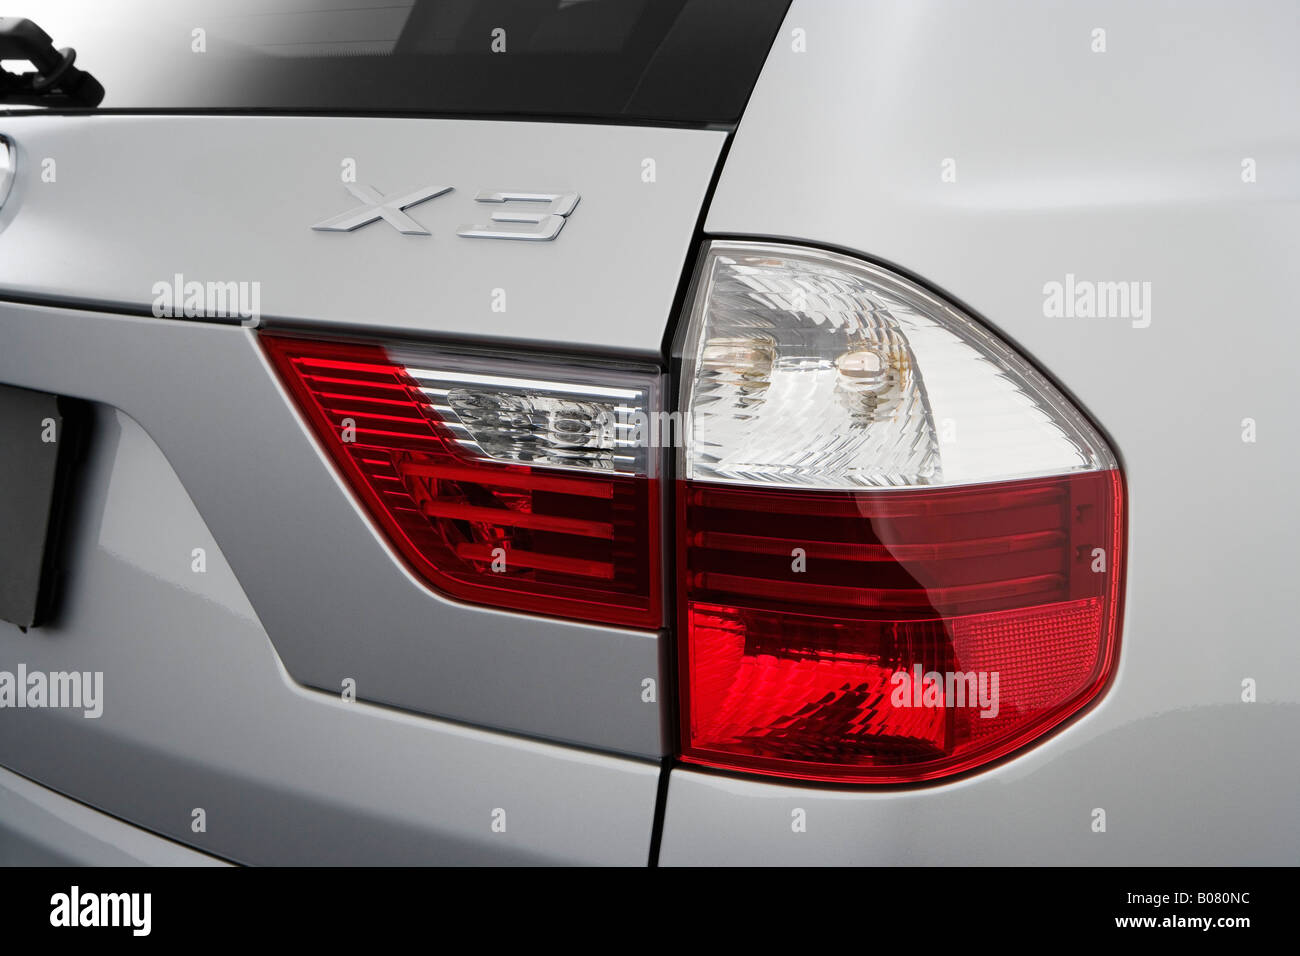 2008 bmw x3 3 0si in gray tail light